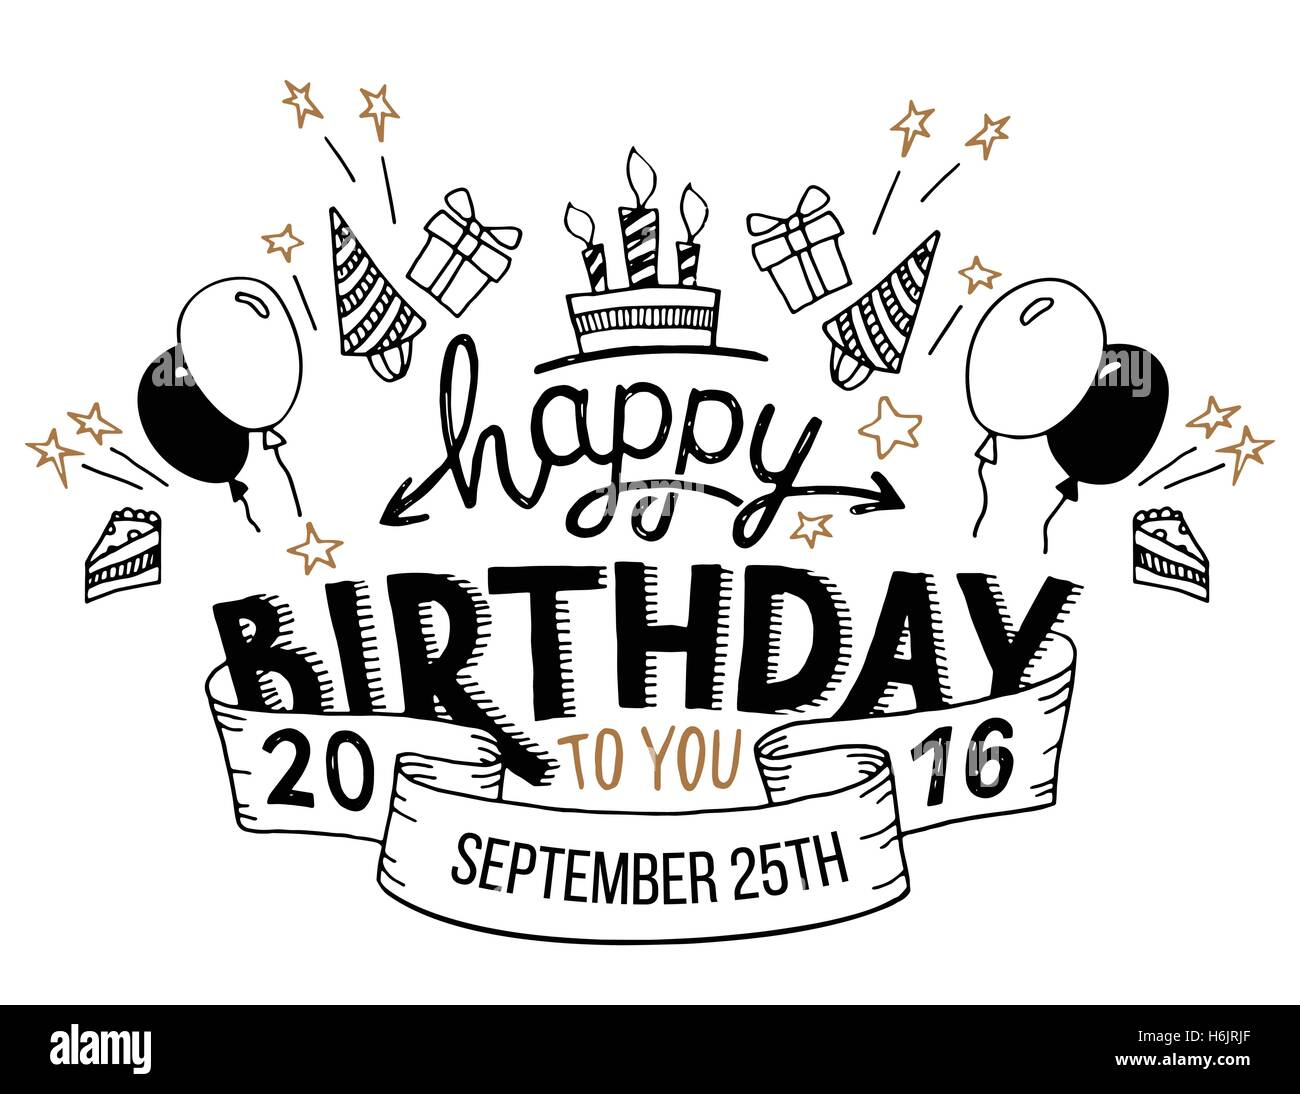 Happy Birthday To You Hand Drawn Typography Headline For Greeting Cards In Vintage Style Isolated On White Background